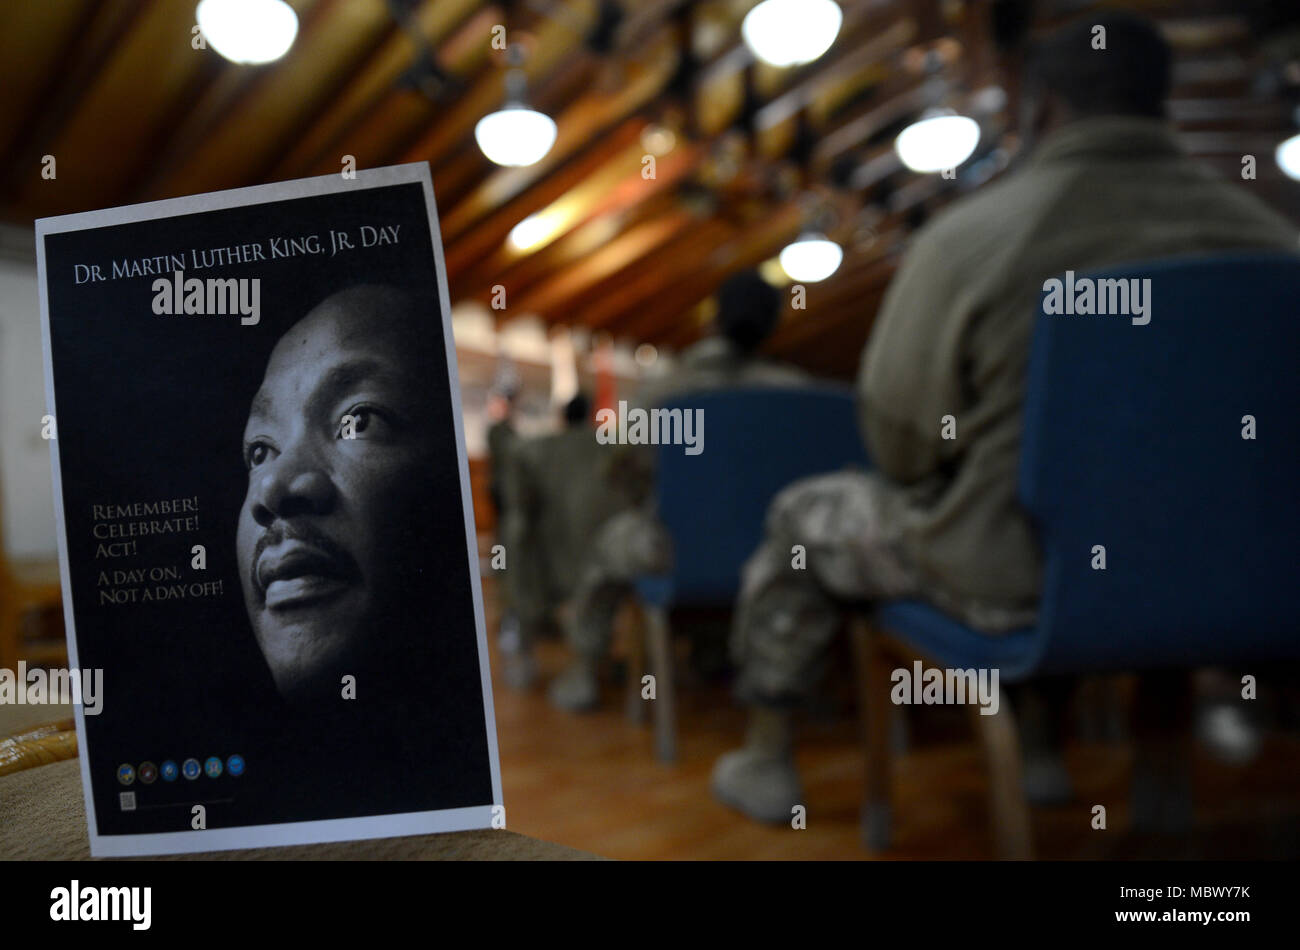 Members of Bagram Airfield gathered at the Enduring Faith Chapel to celebrate Martin Luther King Day Jan. 15, 2018 at Bagram Airfield, Afghanistan. MLK Day is a federal holiday held on the third Monday of January. It celebrates the life and achievements of Martin Luther King Jr., an influential American civil rights leader who is most well-known for his campaigns to end racial segregation on public transport and for racial equality in the United States. (U.S. Air Force photo/Staff Sgt. Divine Cox) - Stock Image